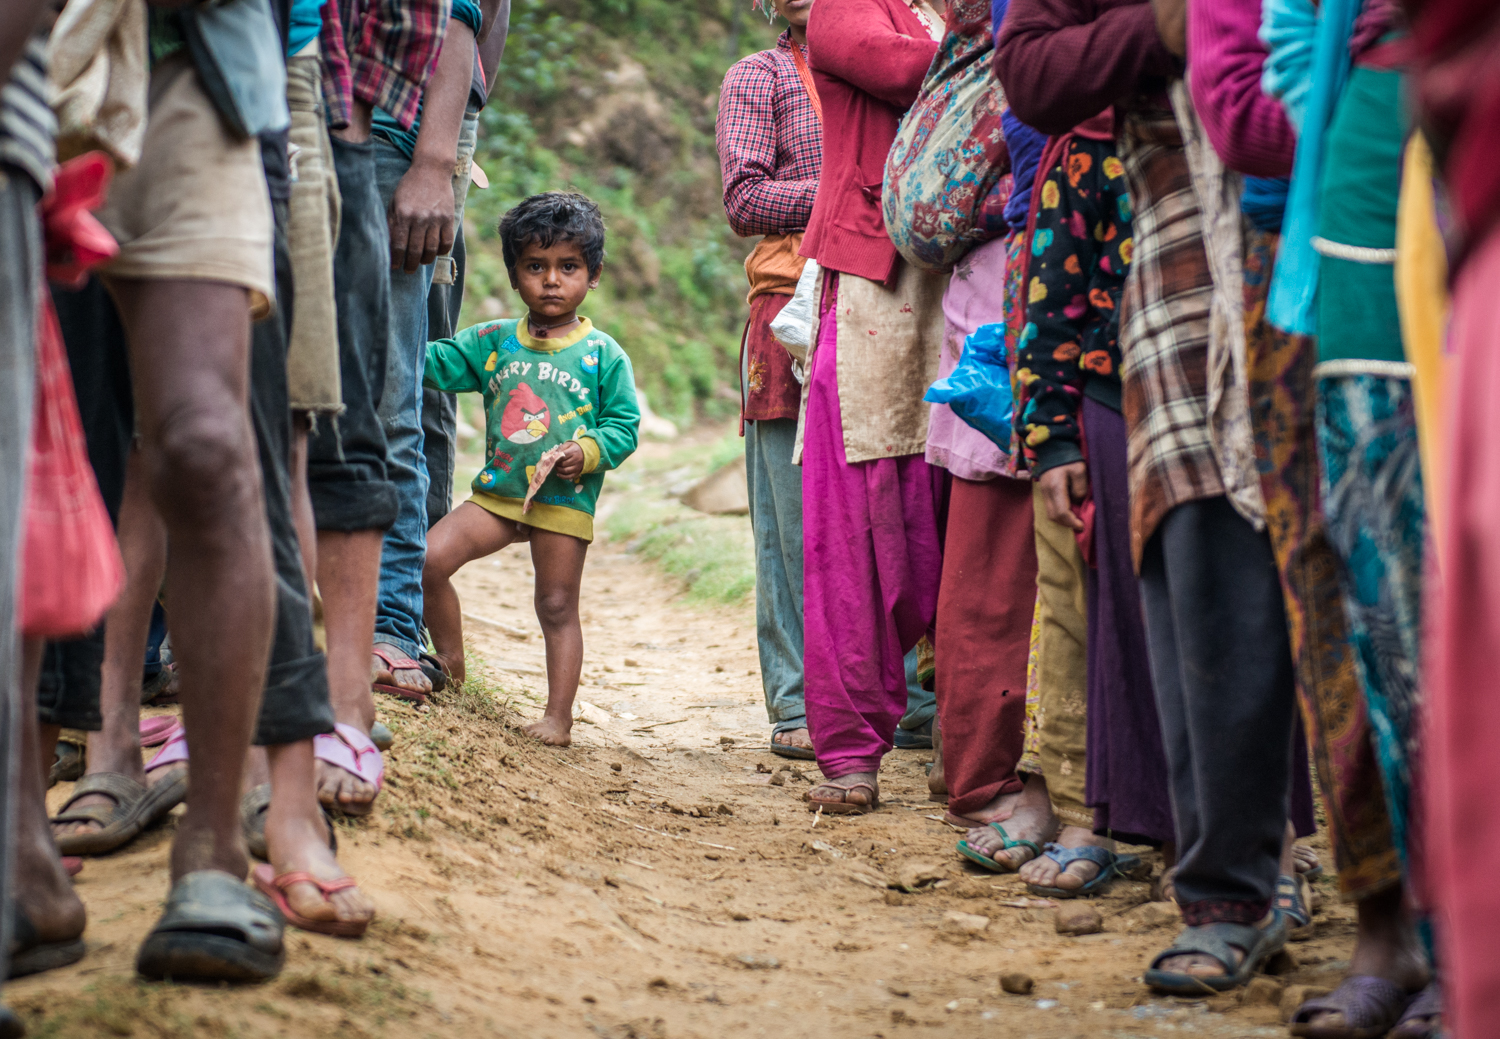 A boy stands in line alongside families to receive aid.